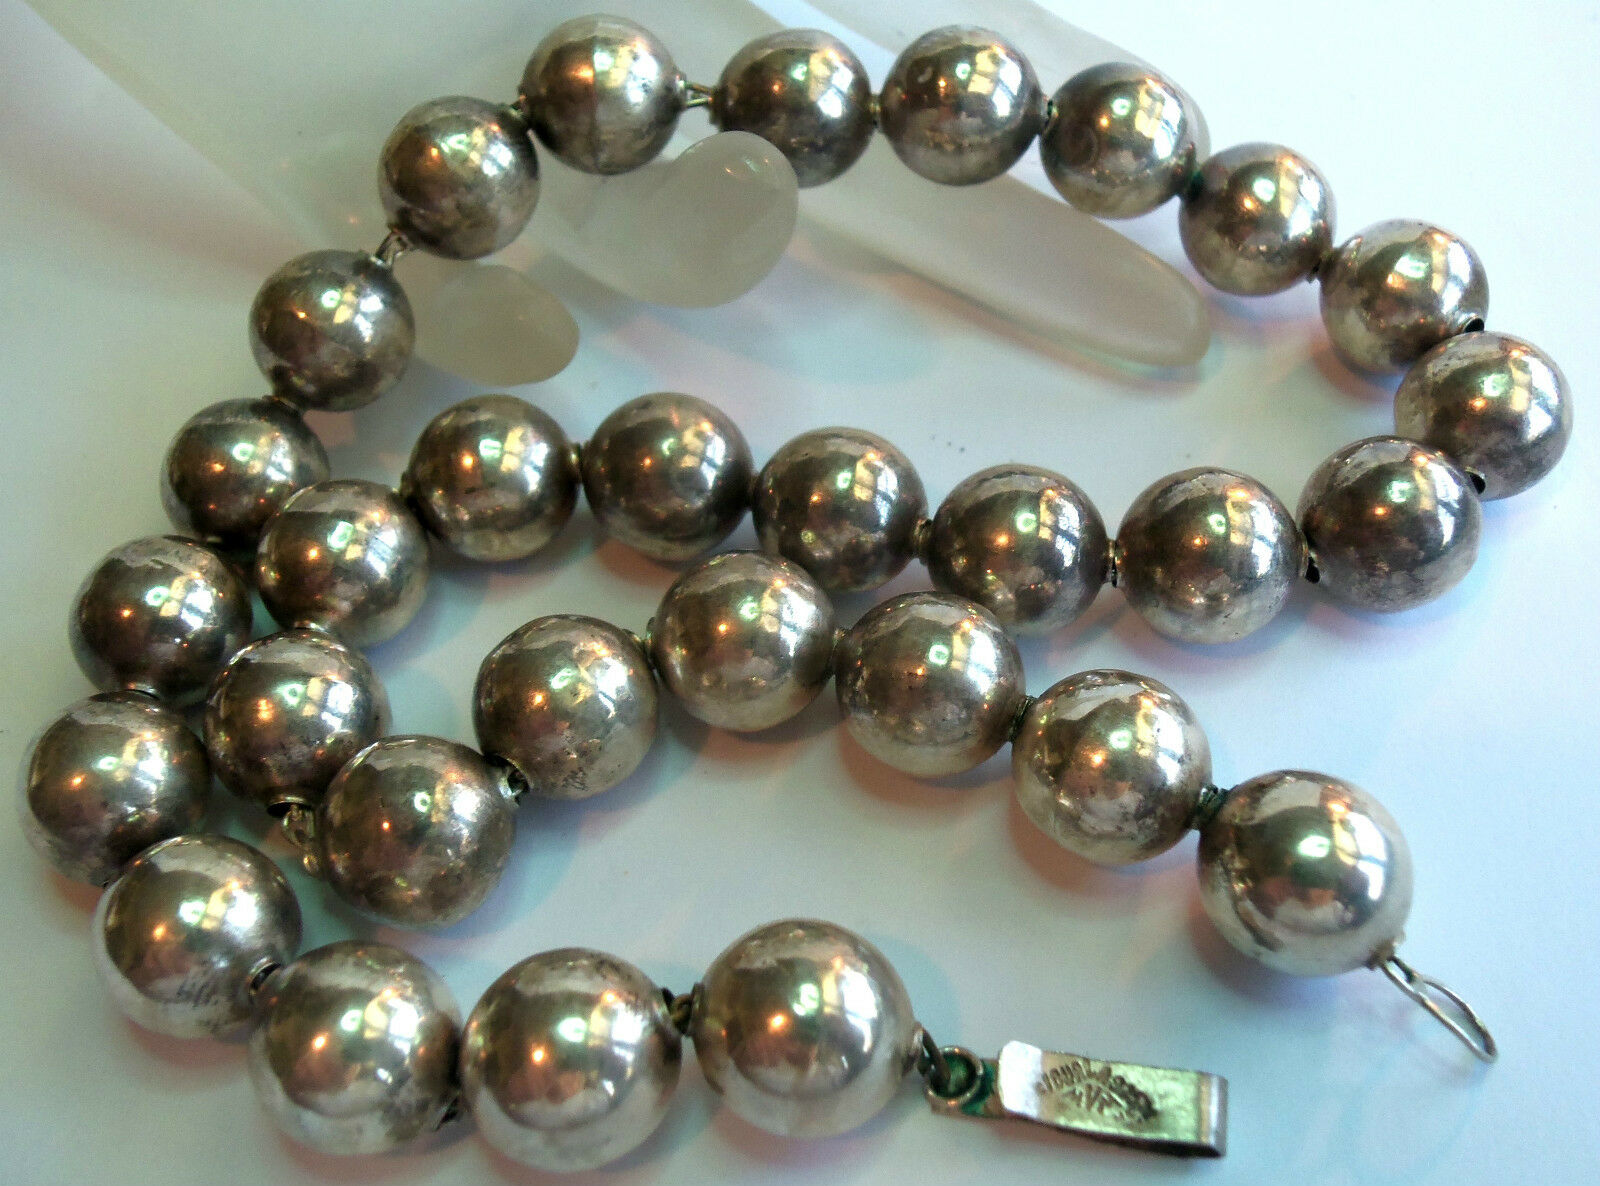 MEXICO STERLING SILVER 925 Designer BEAD NECKLACE ...